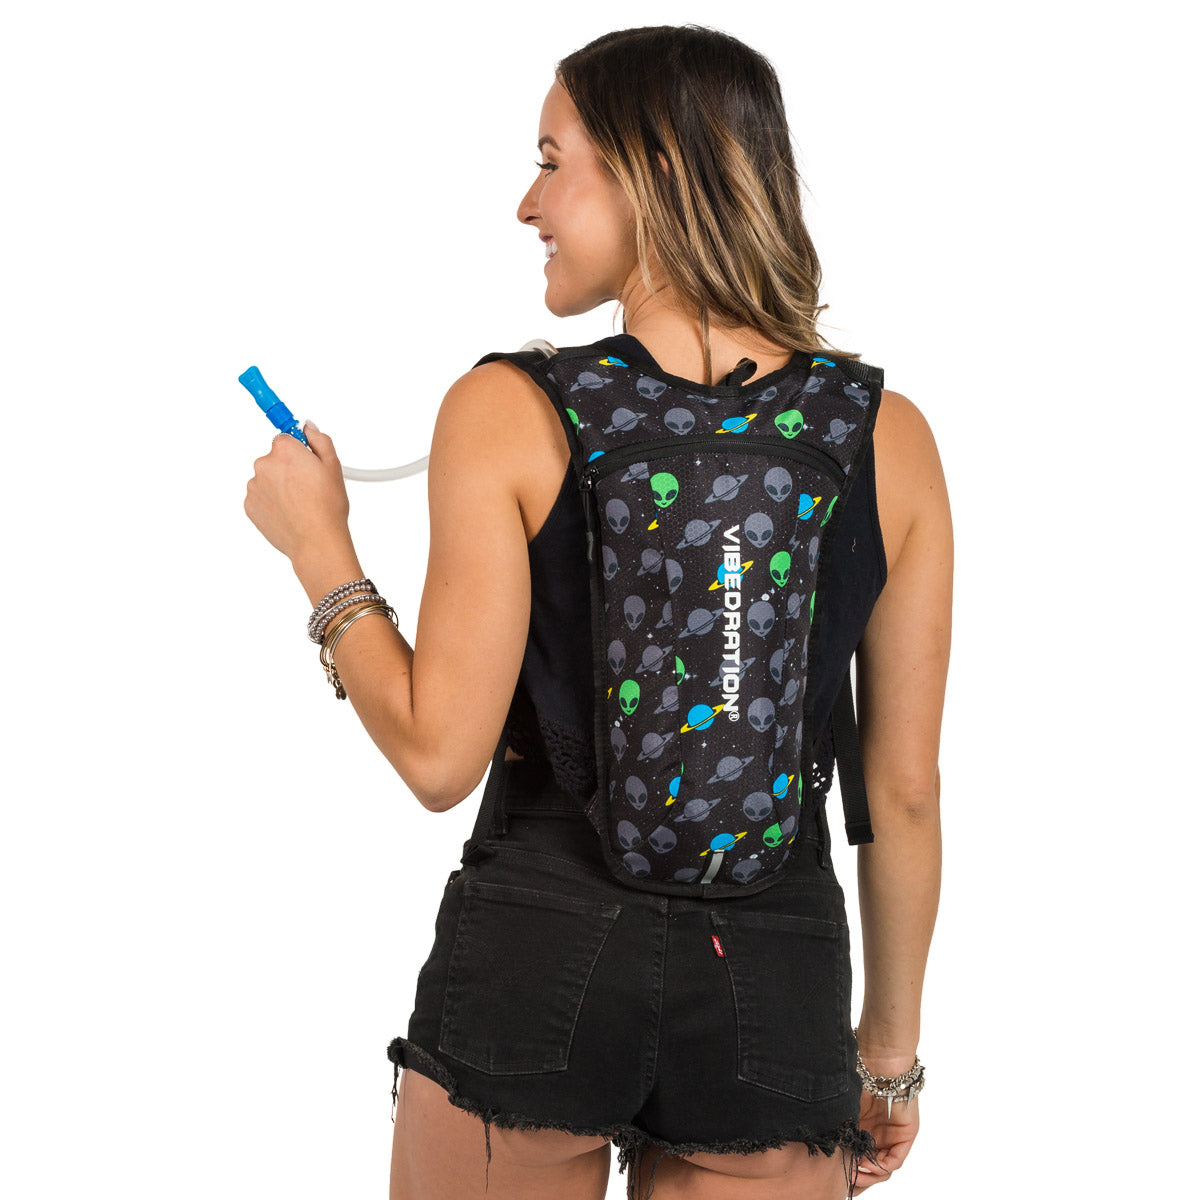 Alienz GA 2 Liter Hydration Pack for Music Festivals